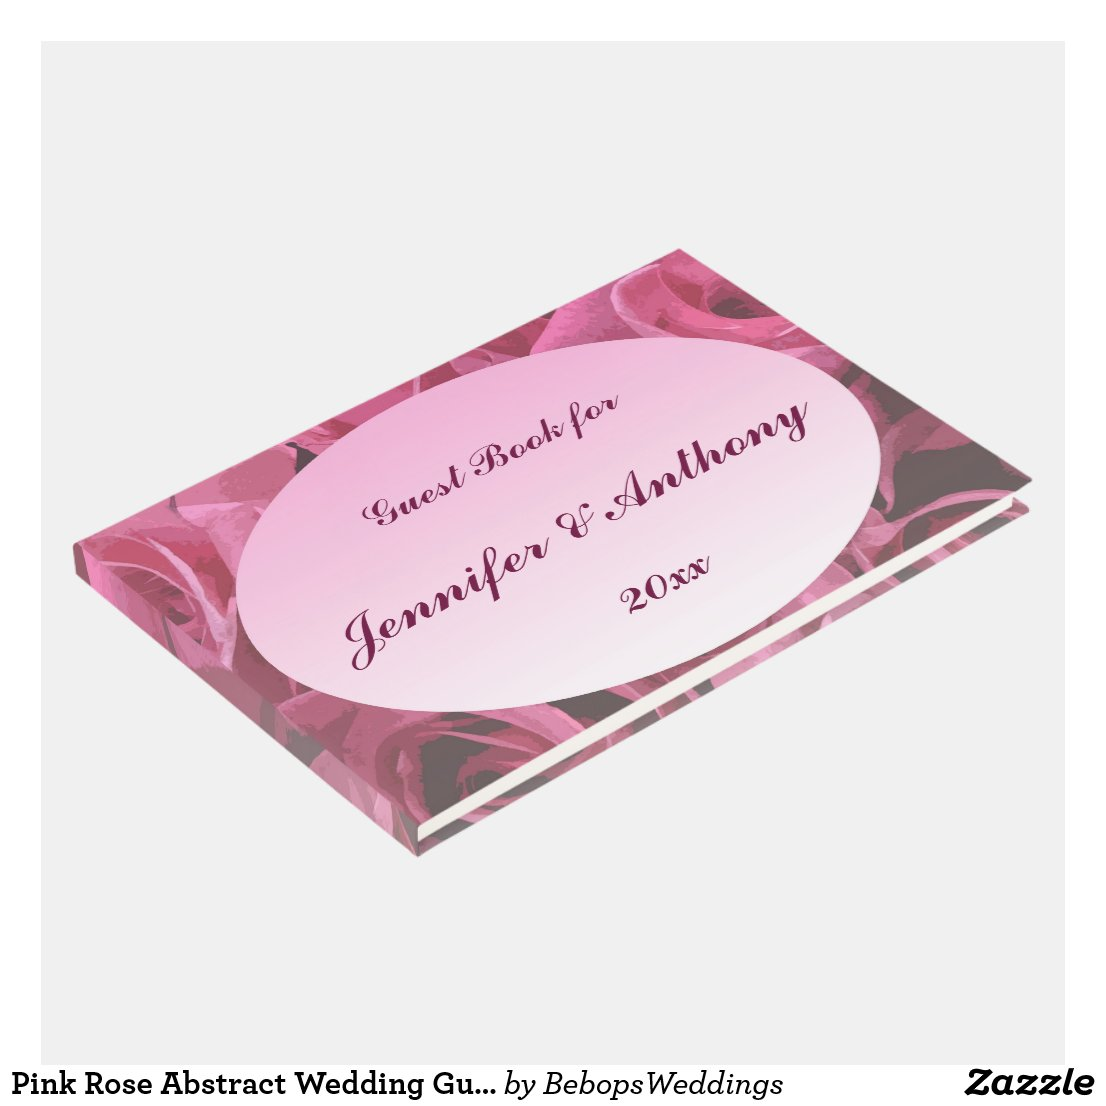 Pink Rose Abstract Wedding Guest Book